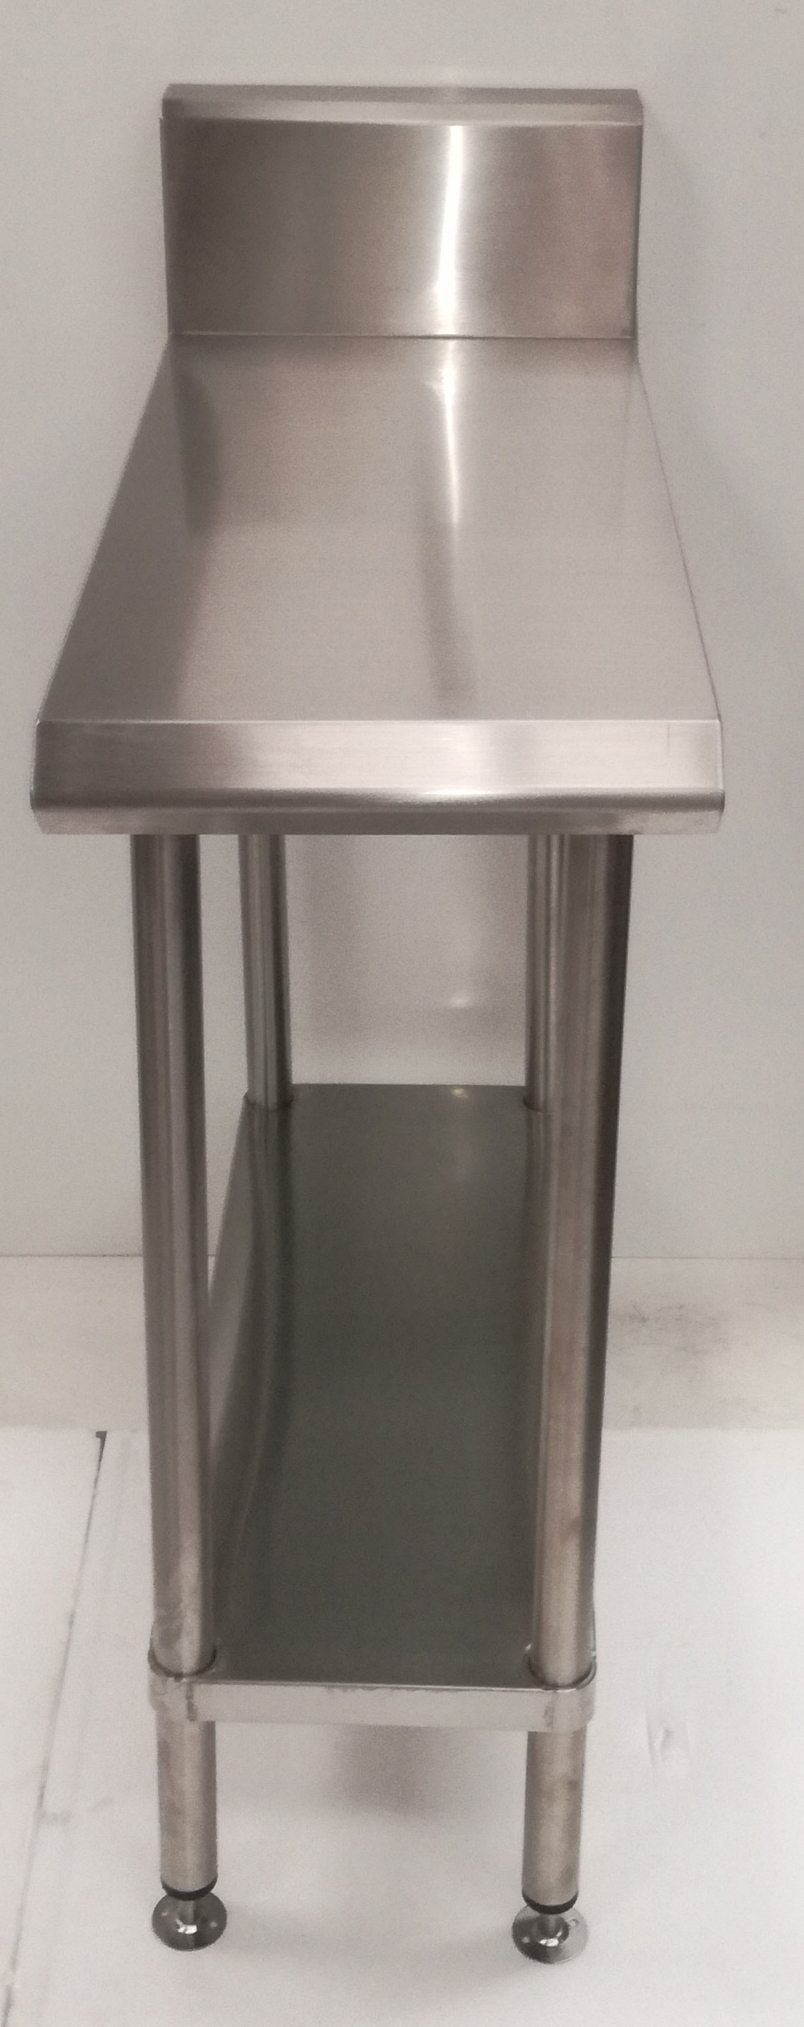 Stainless Steel Infill Bench Blue Seal Profile 300mm - New - $465 + GST